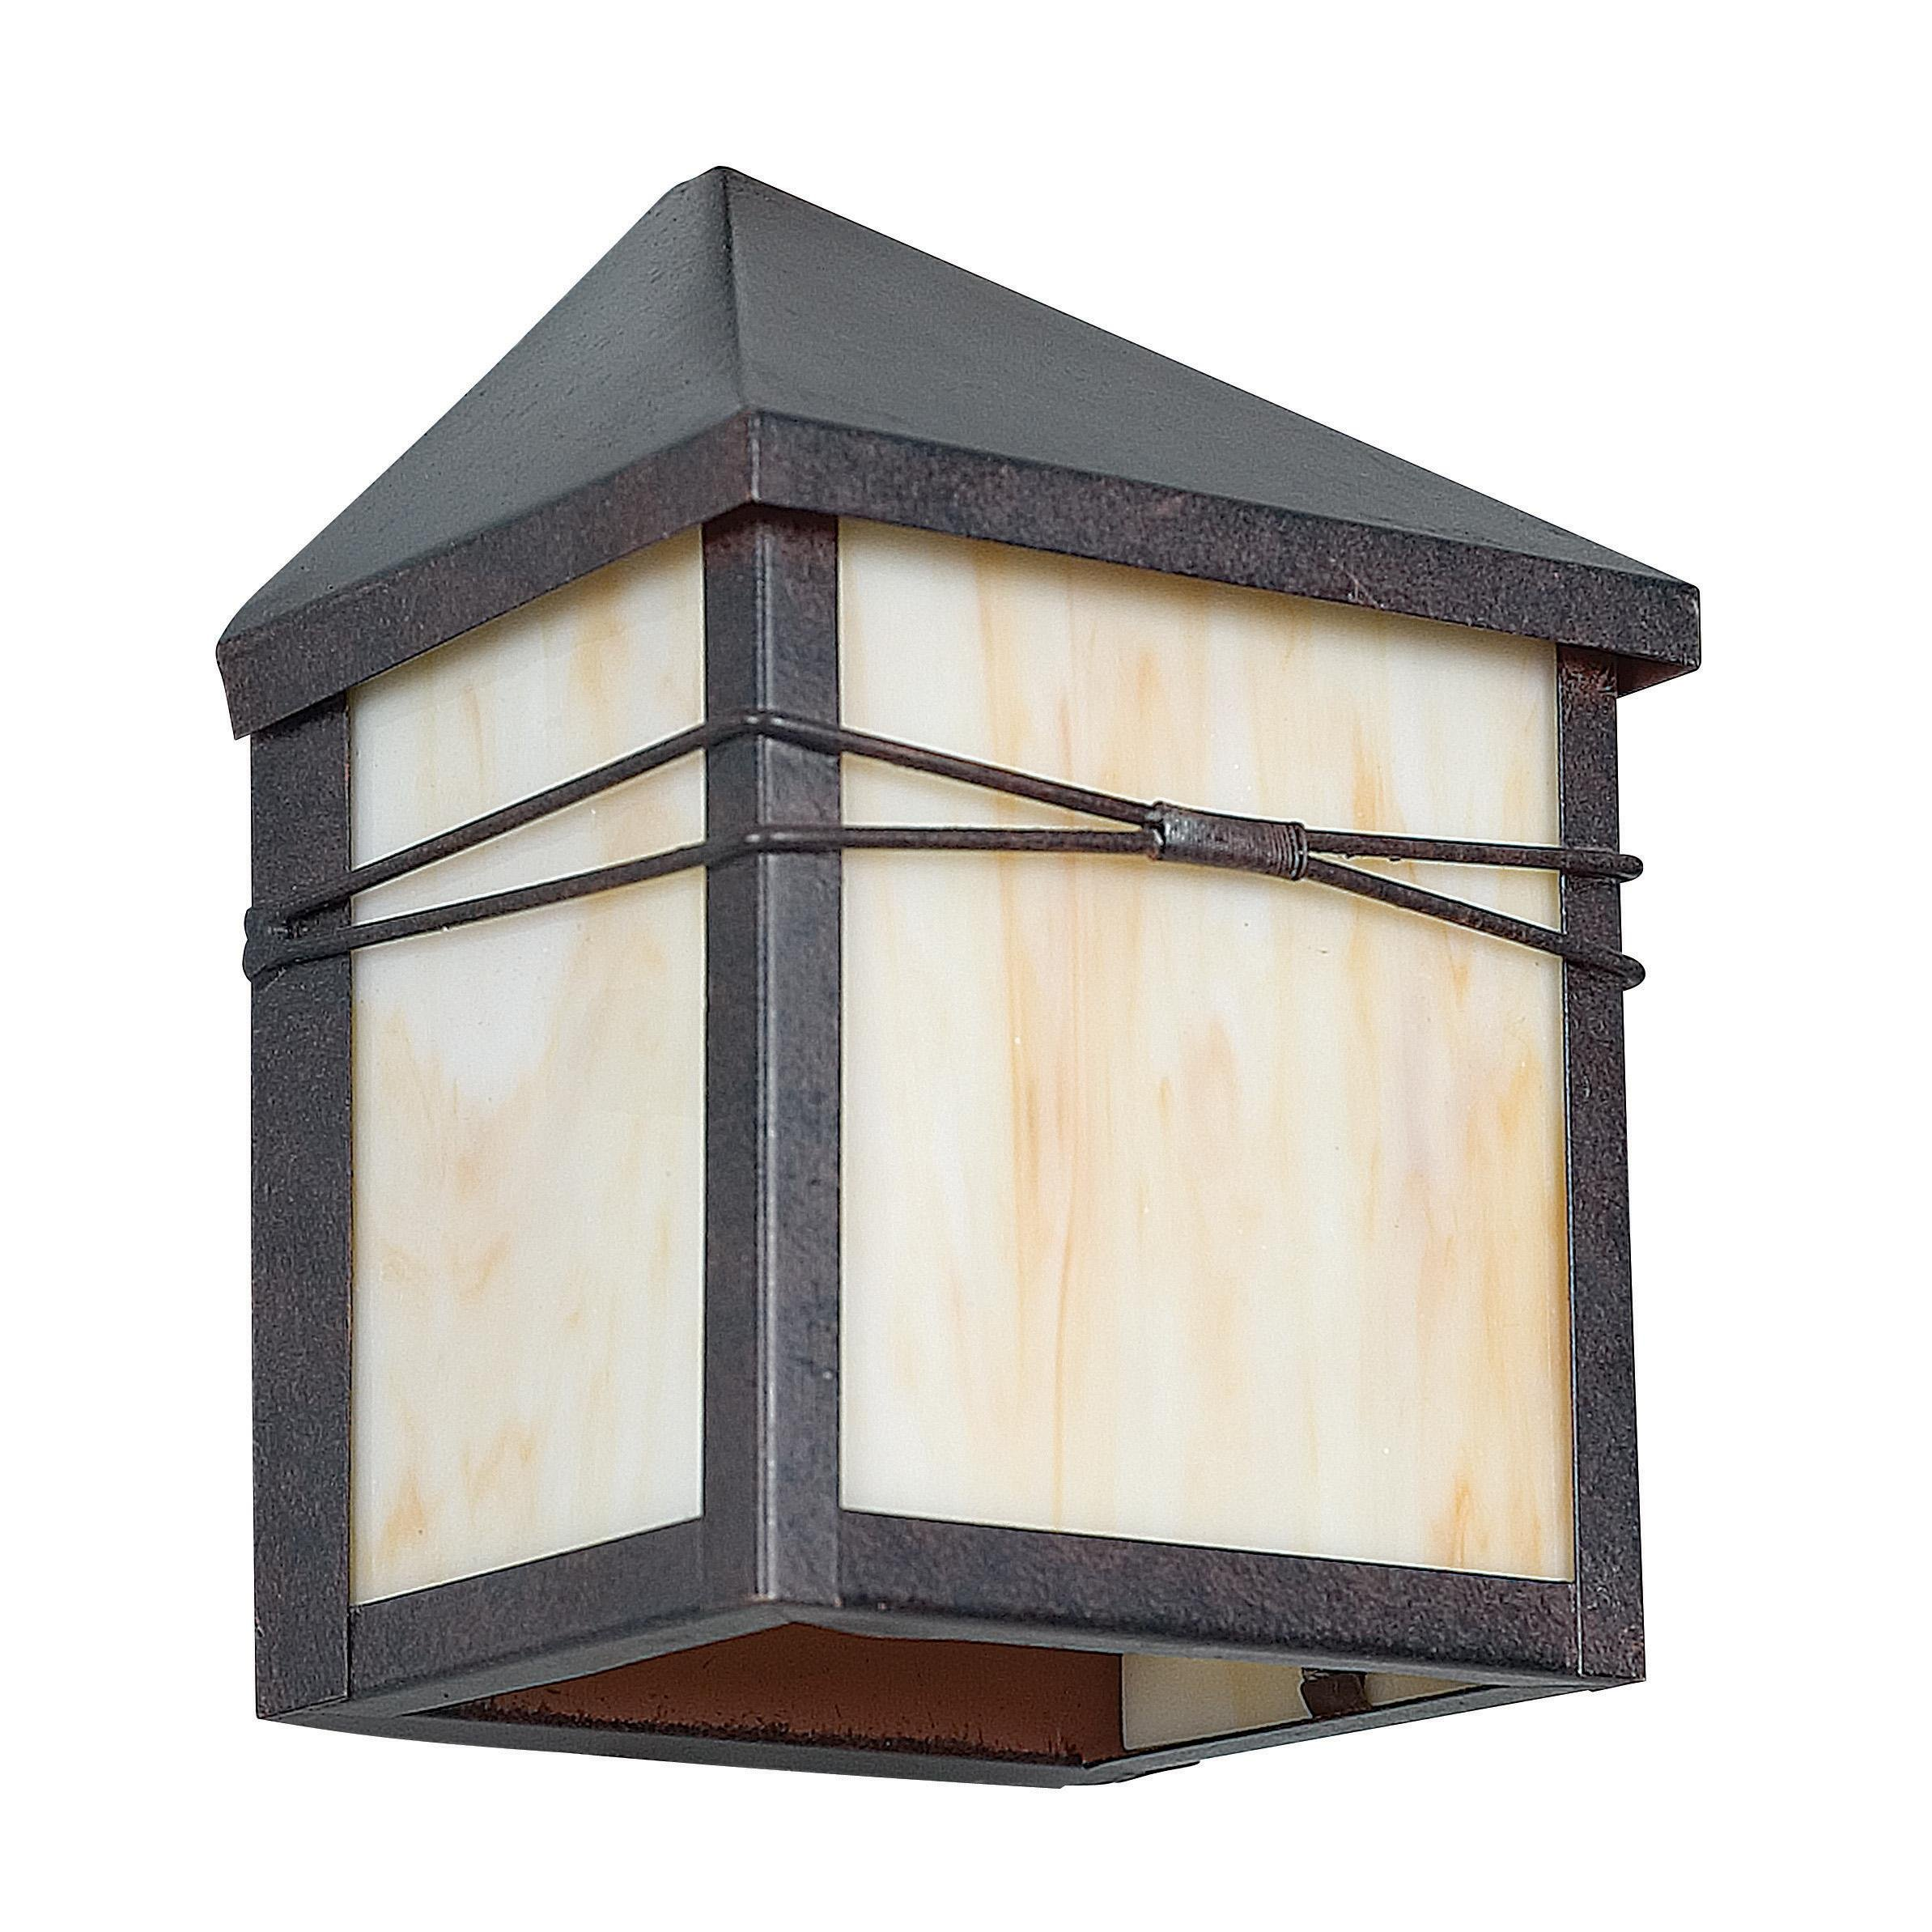 Sunset Lighting F4650-62 Outdoor Wall Sconce with Honey Glass, Rubbed Bronze Finish